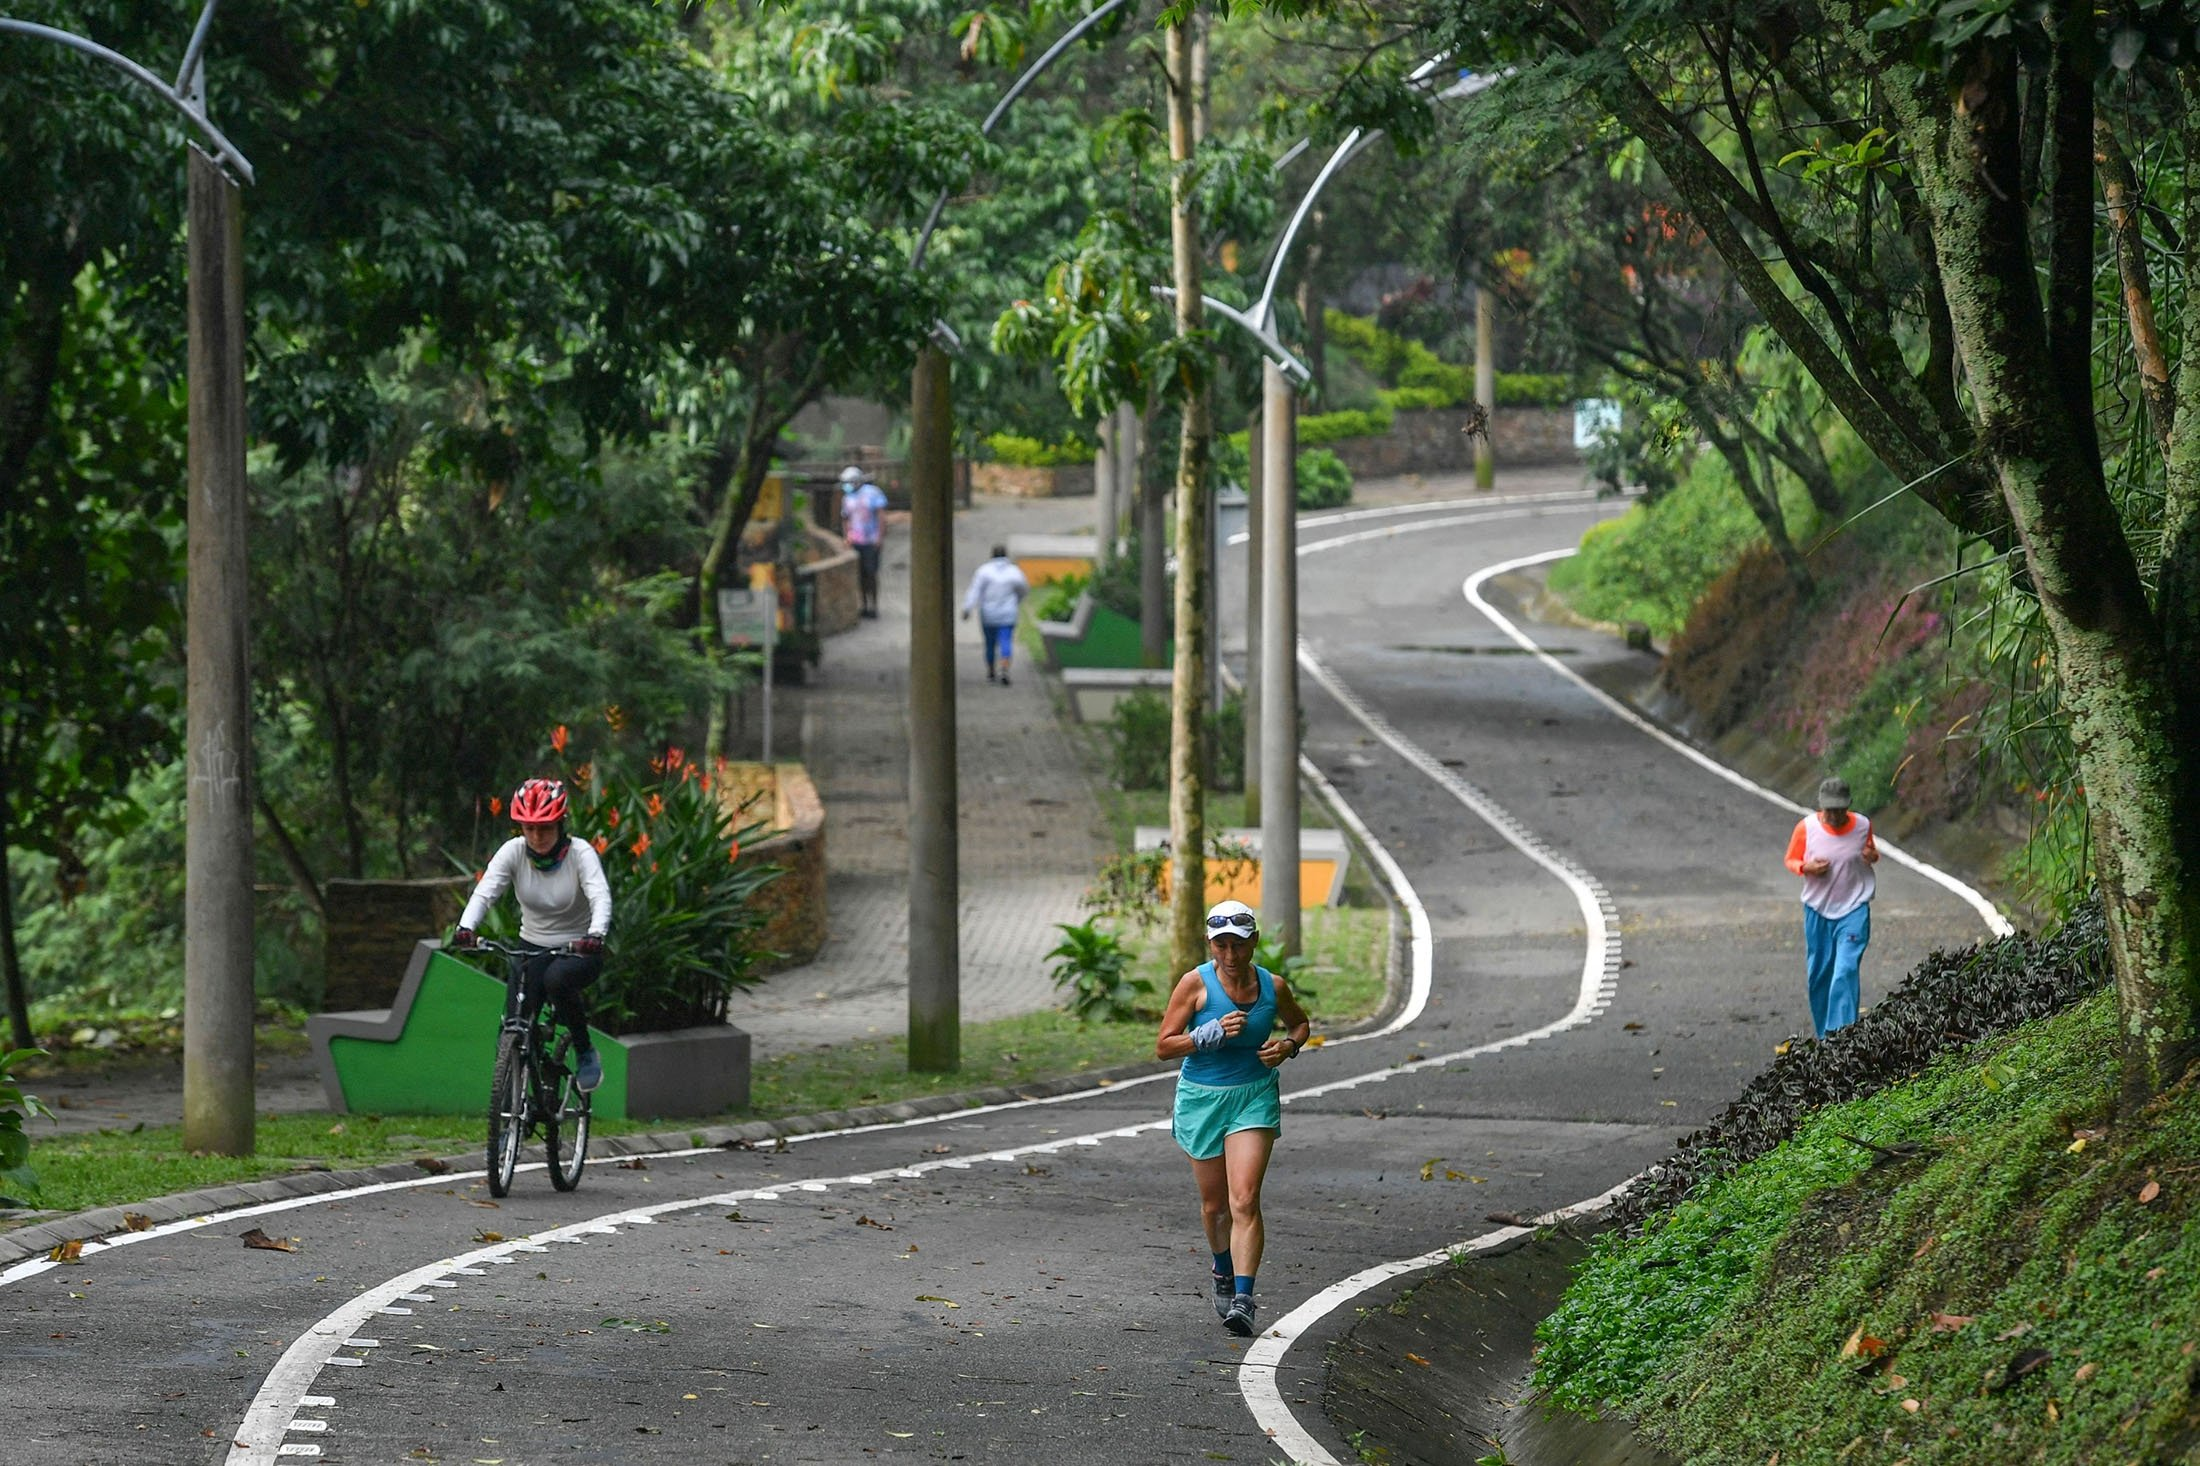 People excercize at the Volador hill in Medellin, Colombia, June 12, 2021. (AFP Photo)